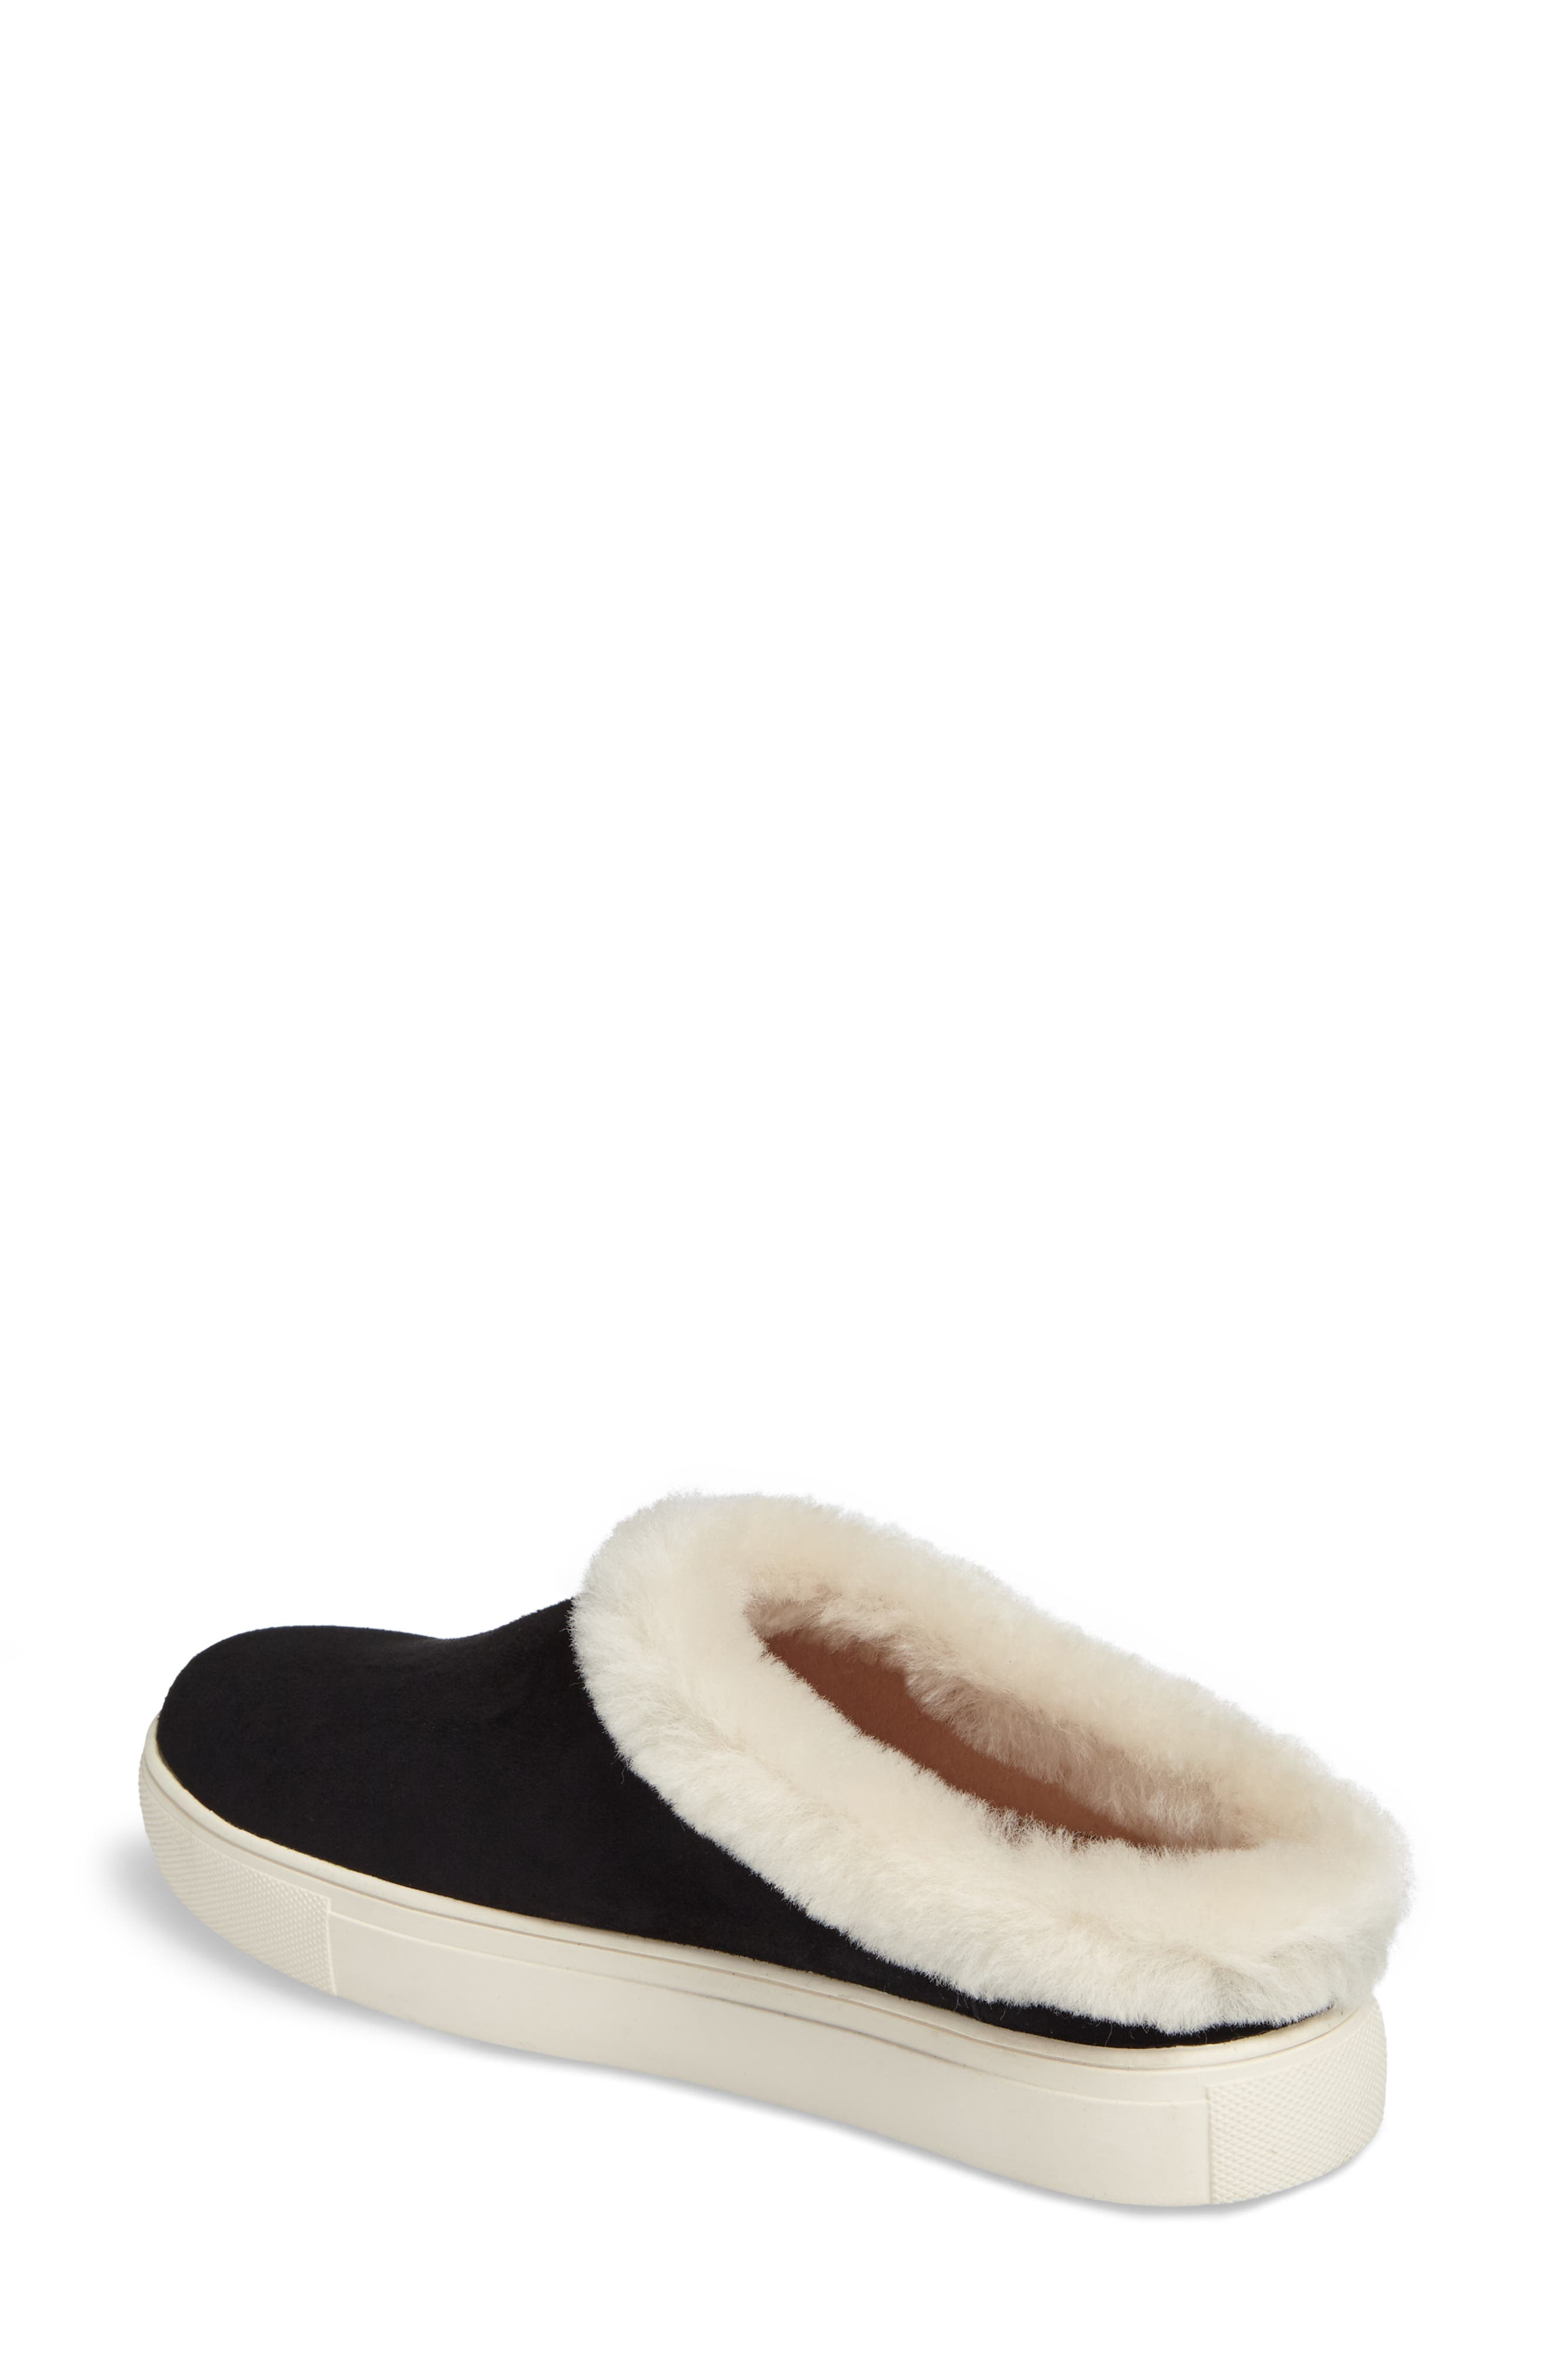 Leia Genuine Shearling Lined Slip-On,                             Alternate thumbnail 2, color,                             001